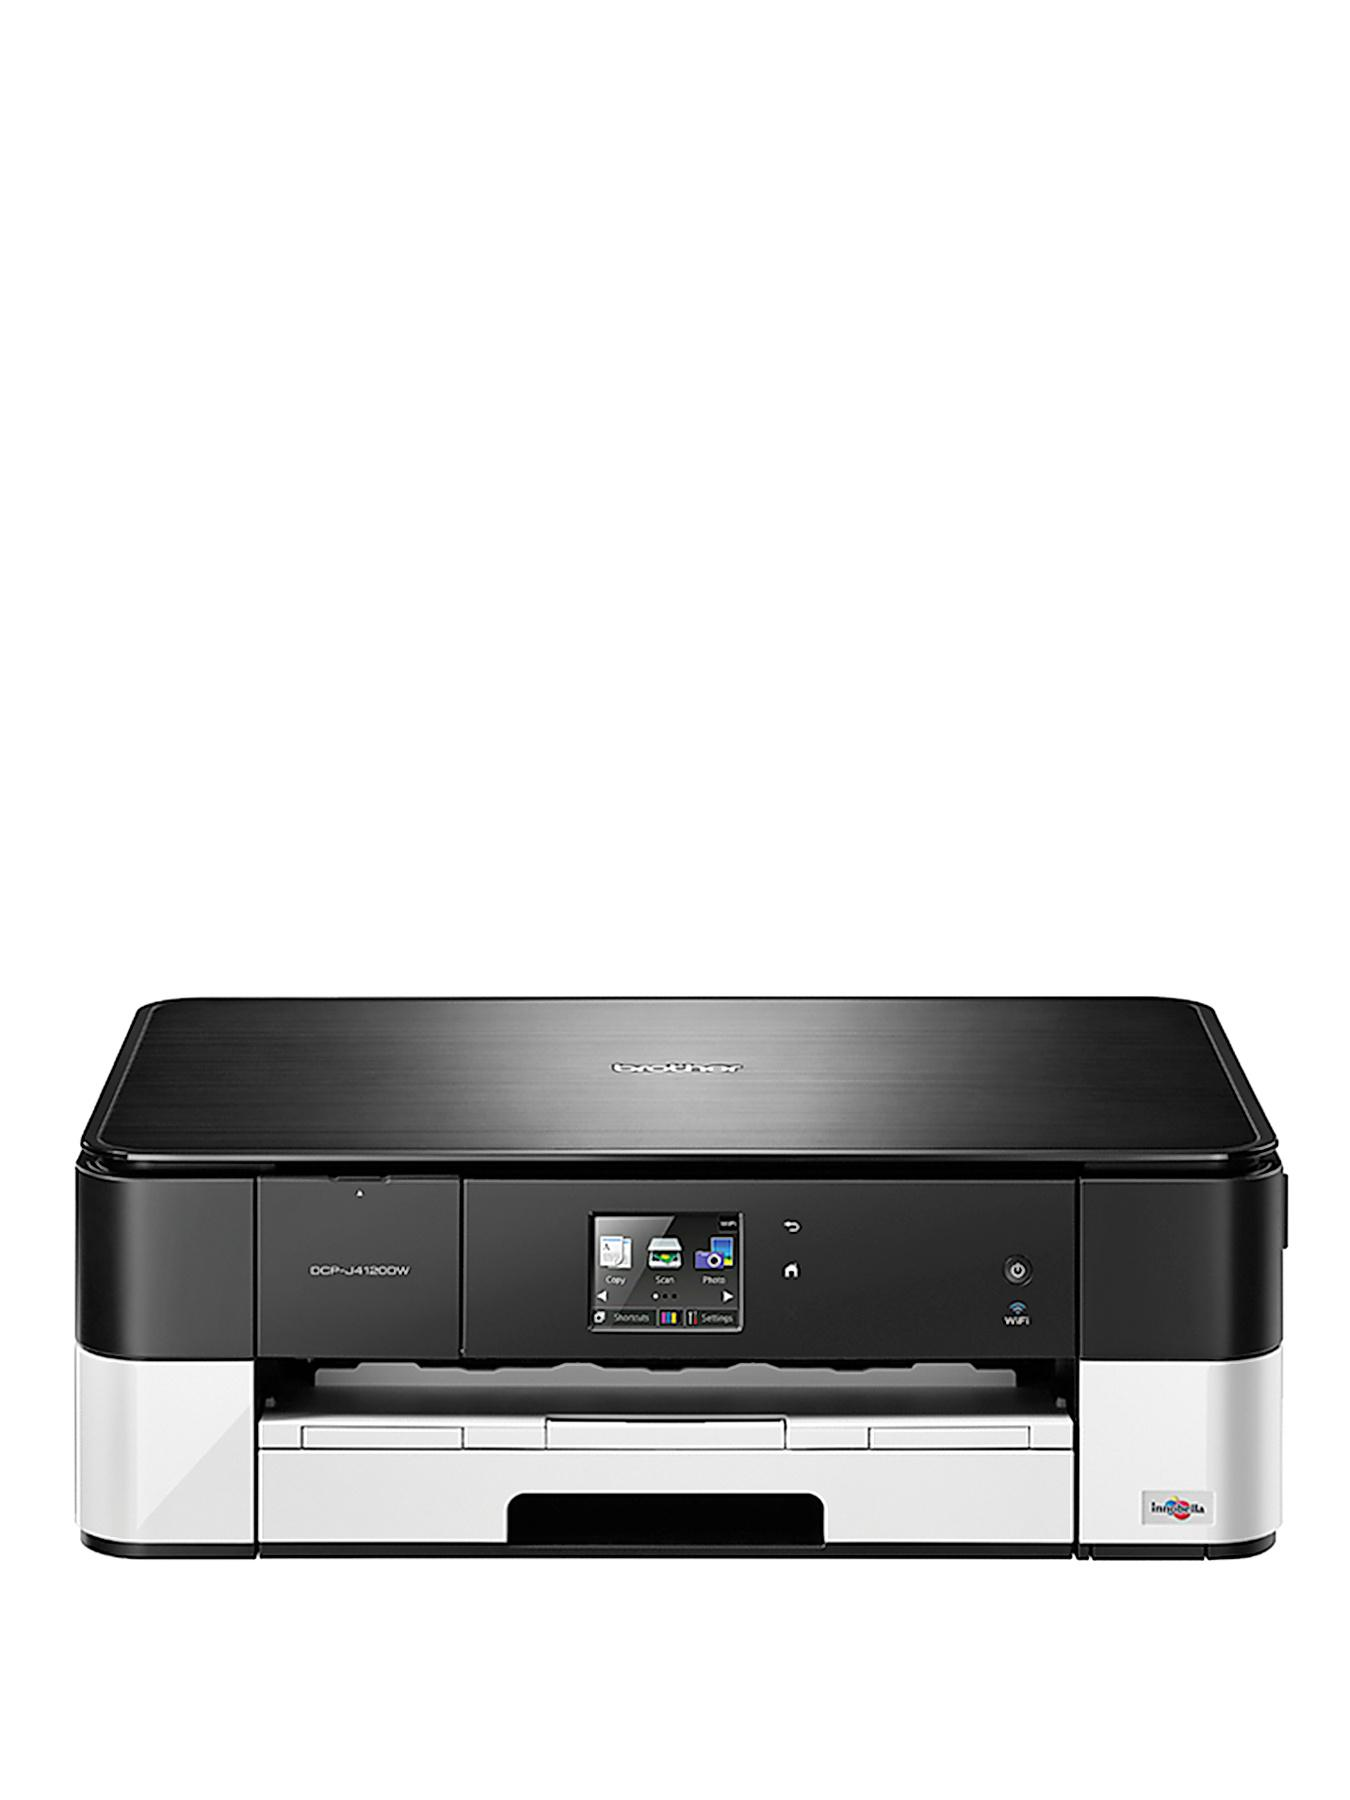 Brother DCP-J4120DW Inkjet AIO with A3 Print - Black White